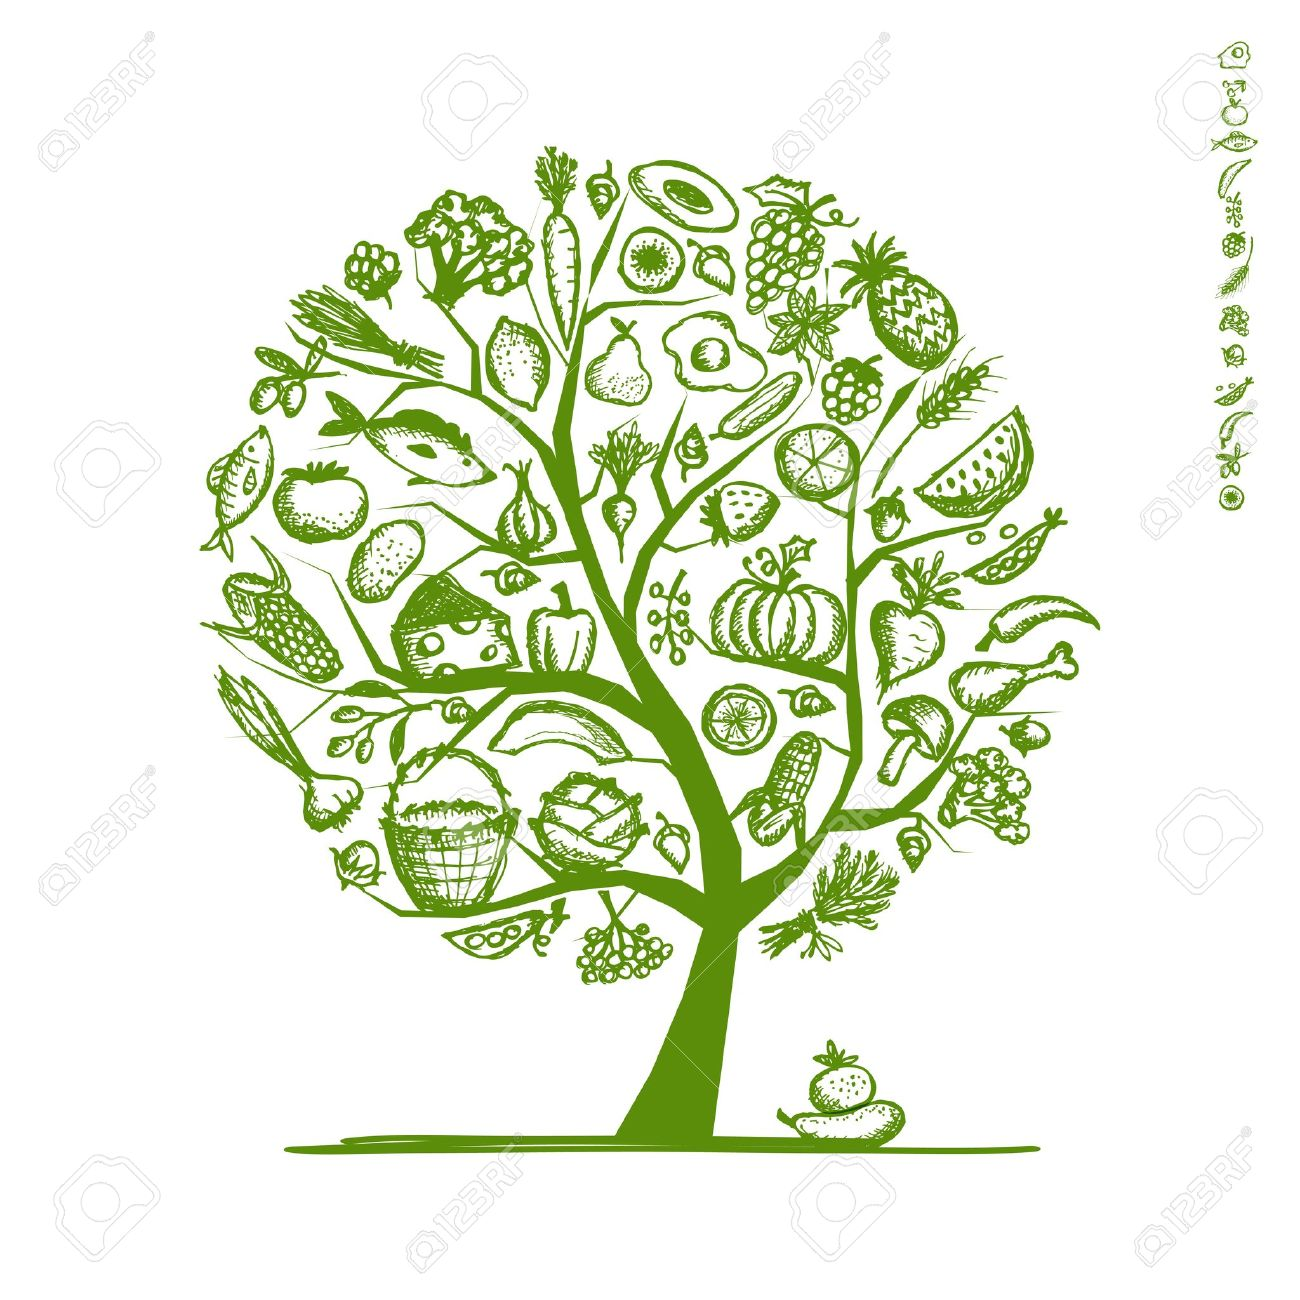 356 Pepper Tree Stock Vector Illustration And Royalty Free Pepper.